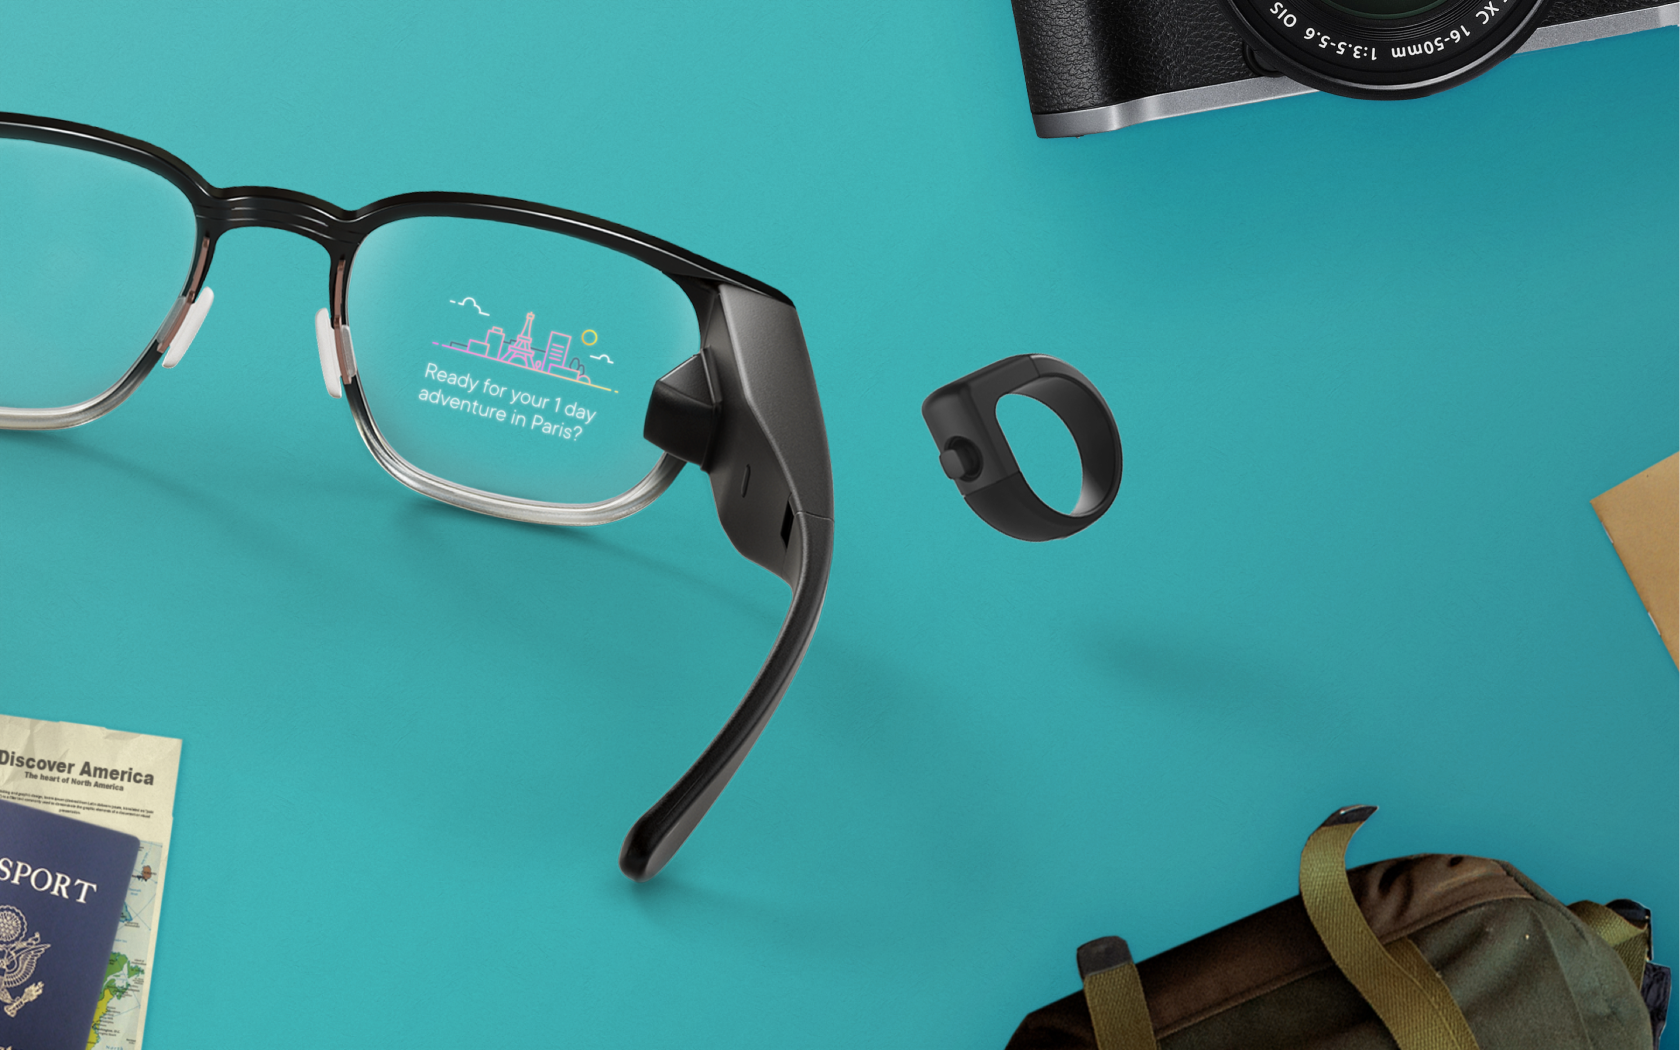 Smart glasses with a city-scape image and the text 'Ready for your 1 day adventure in Paris?' displayed on the lens.